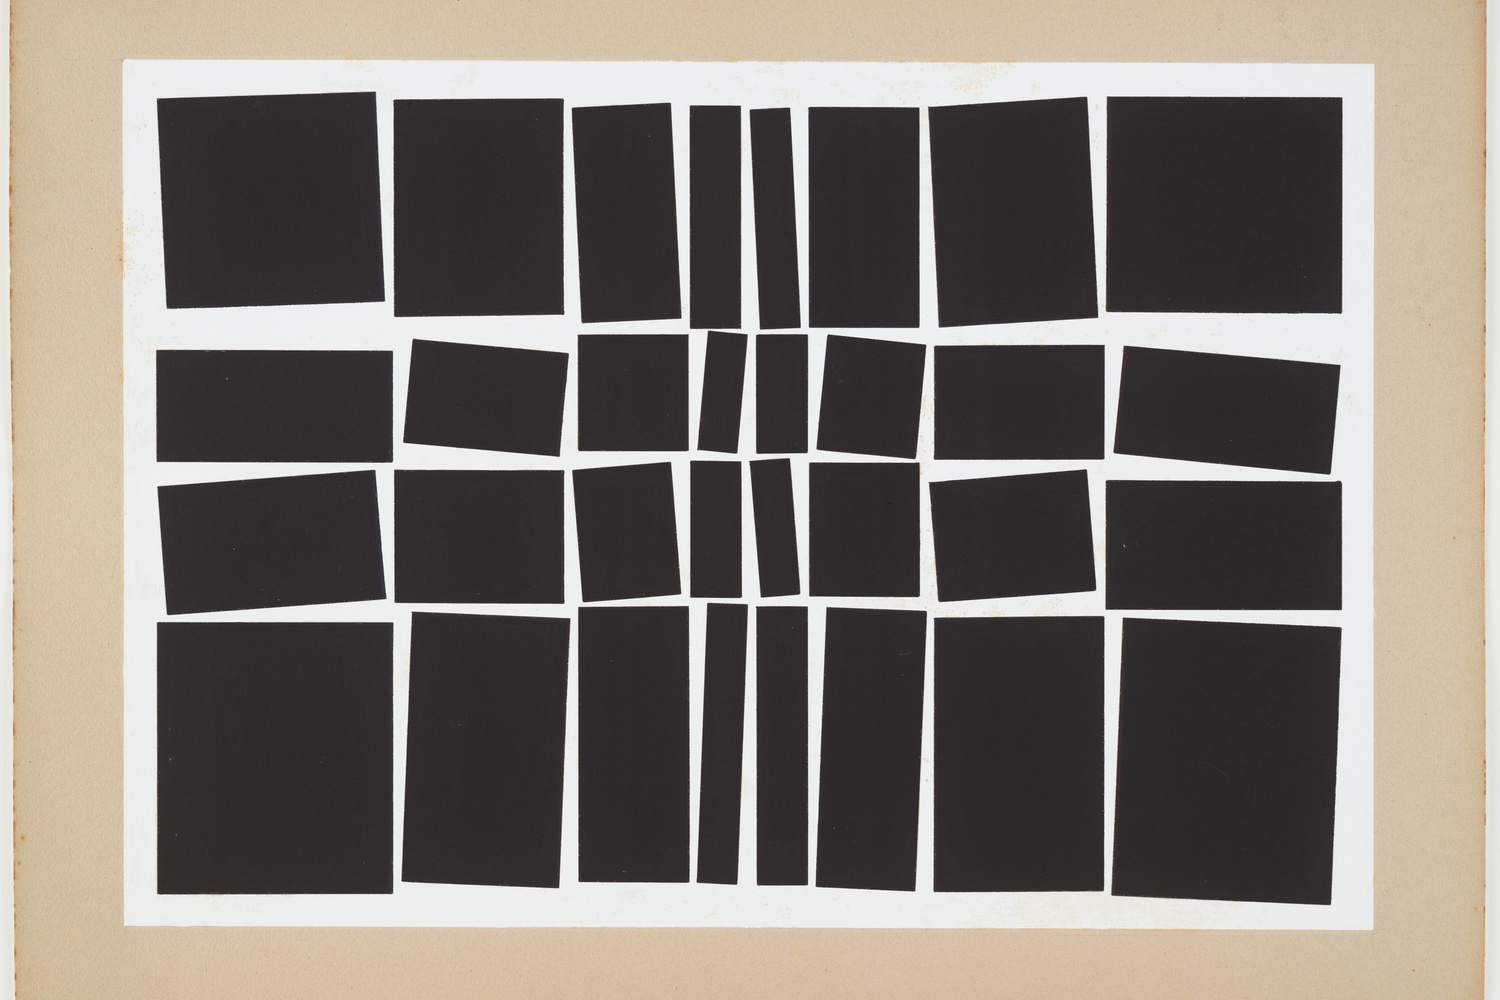 "Hélio Oiticica. Metaesquema No. 348. 1958. Gouache on board, 19 7/8 × 26 3/4"" (50.5 × 68 cm). Purchased with funds given by Patricia Phelps de Cisneros in honor of Paulo Herkenhoff"